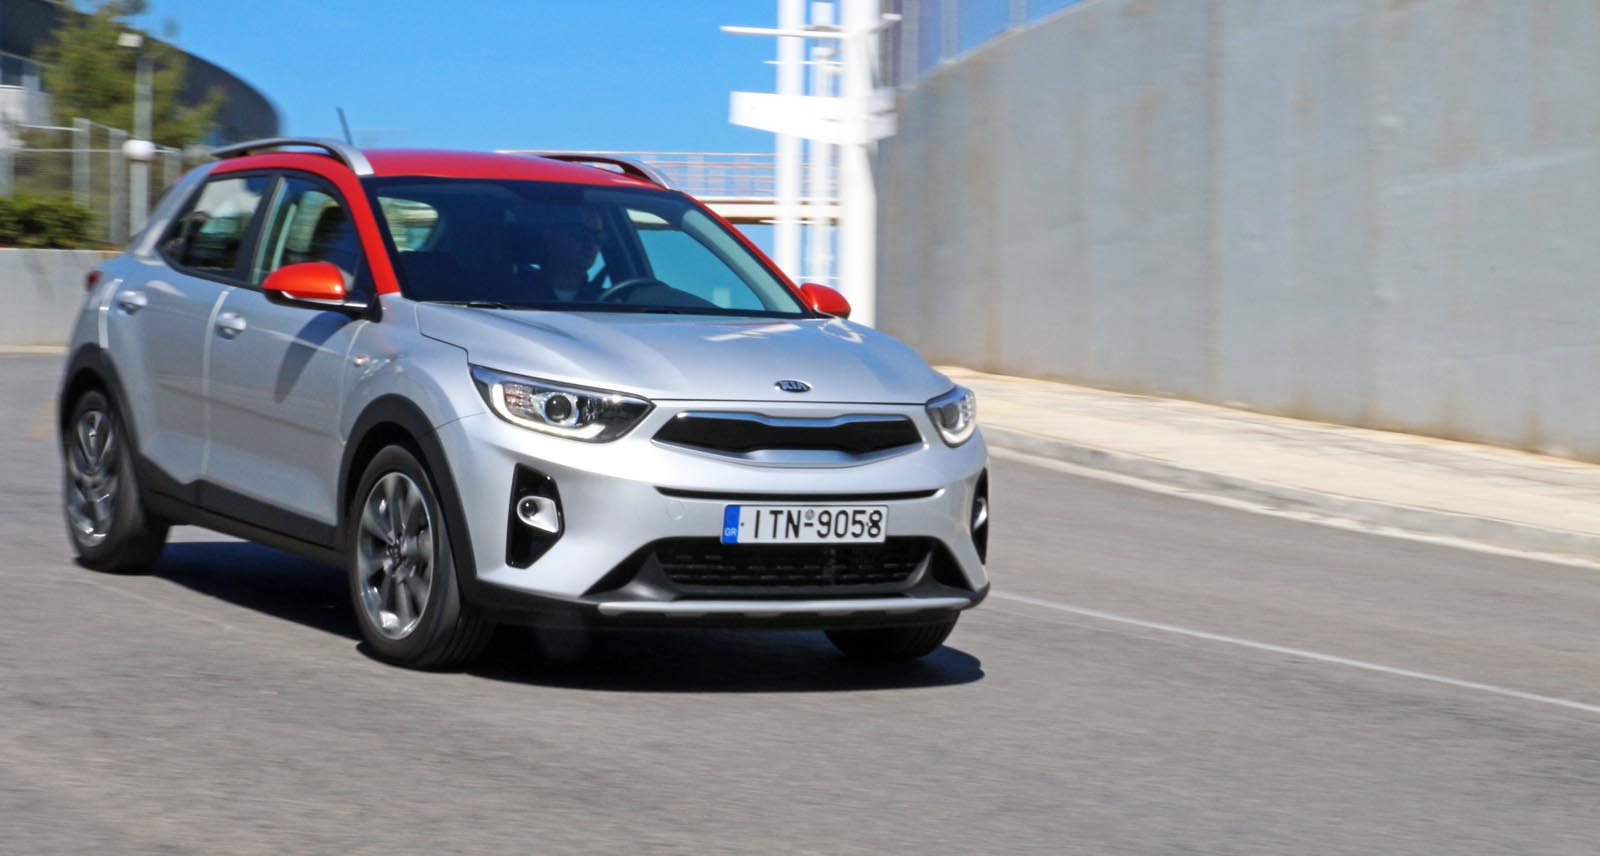 Photo of Kia Stonic 1.0 T-GDi [test drive]